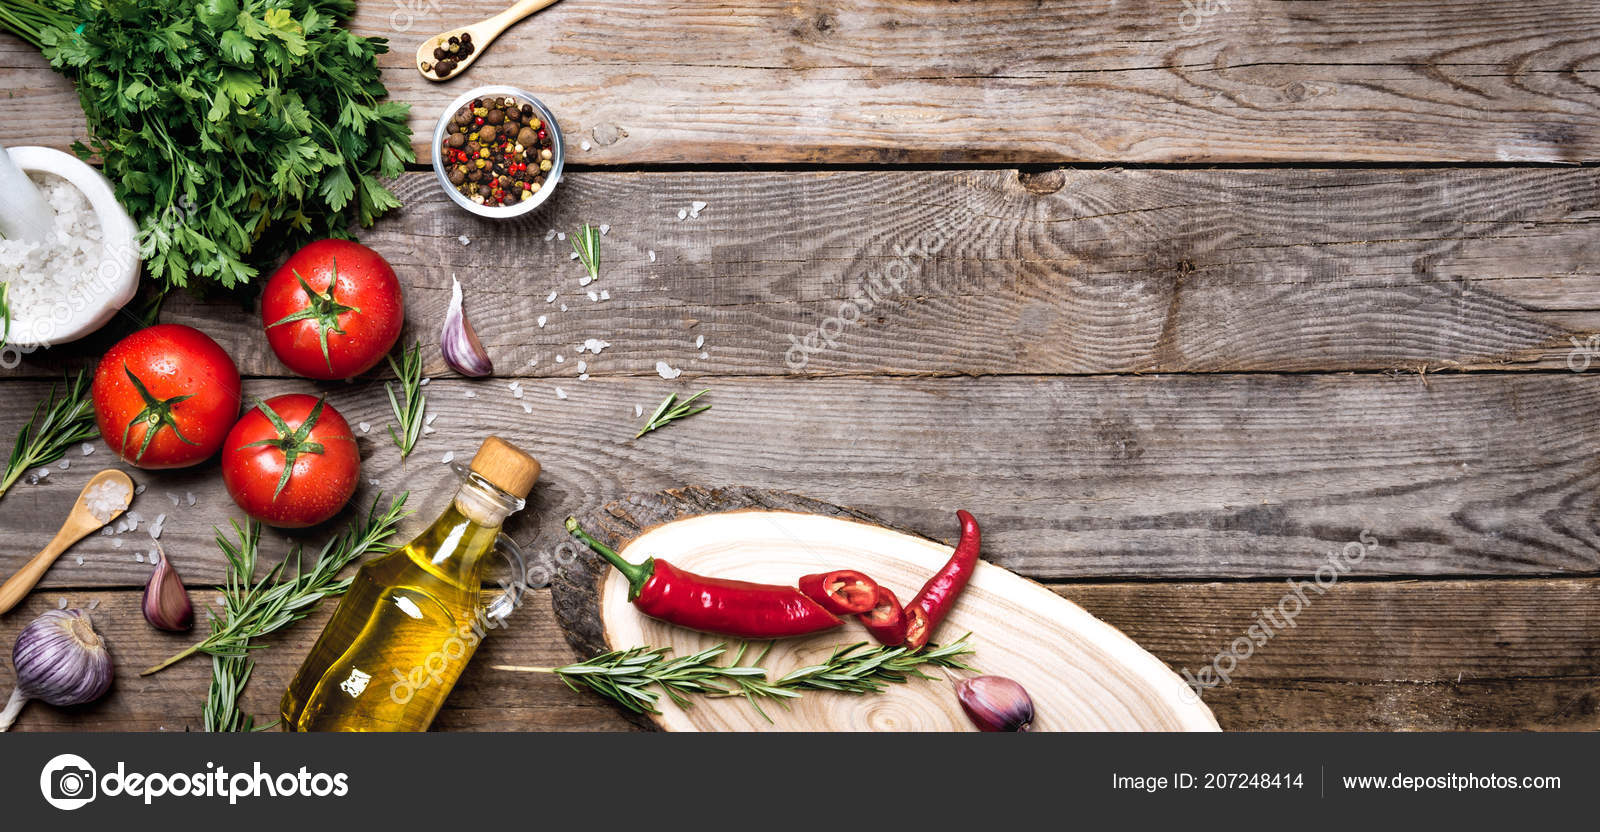 Raw Organic Vegetables With Fresh Ingredients For Healthily Cooking On Vintage Background Top View Banner Vegan Or Diet Food Concept Background Layout With Free Text Space Stock Photo C Photoallel 207248414